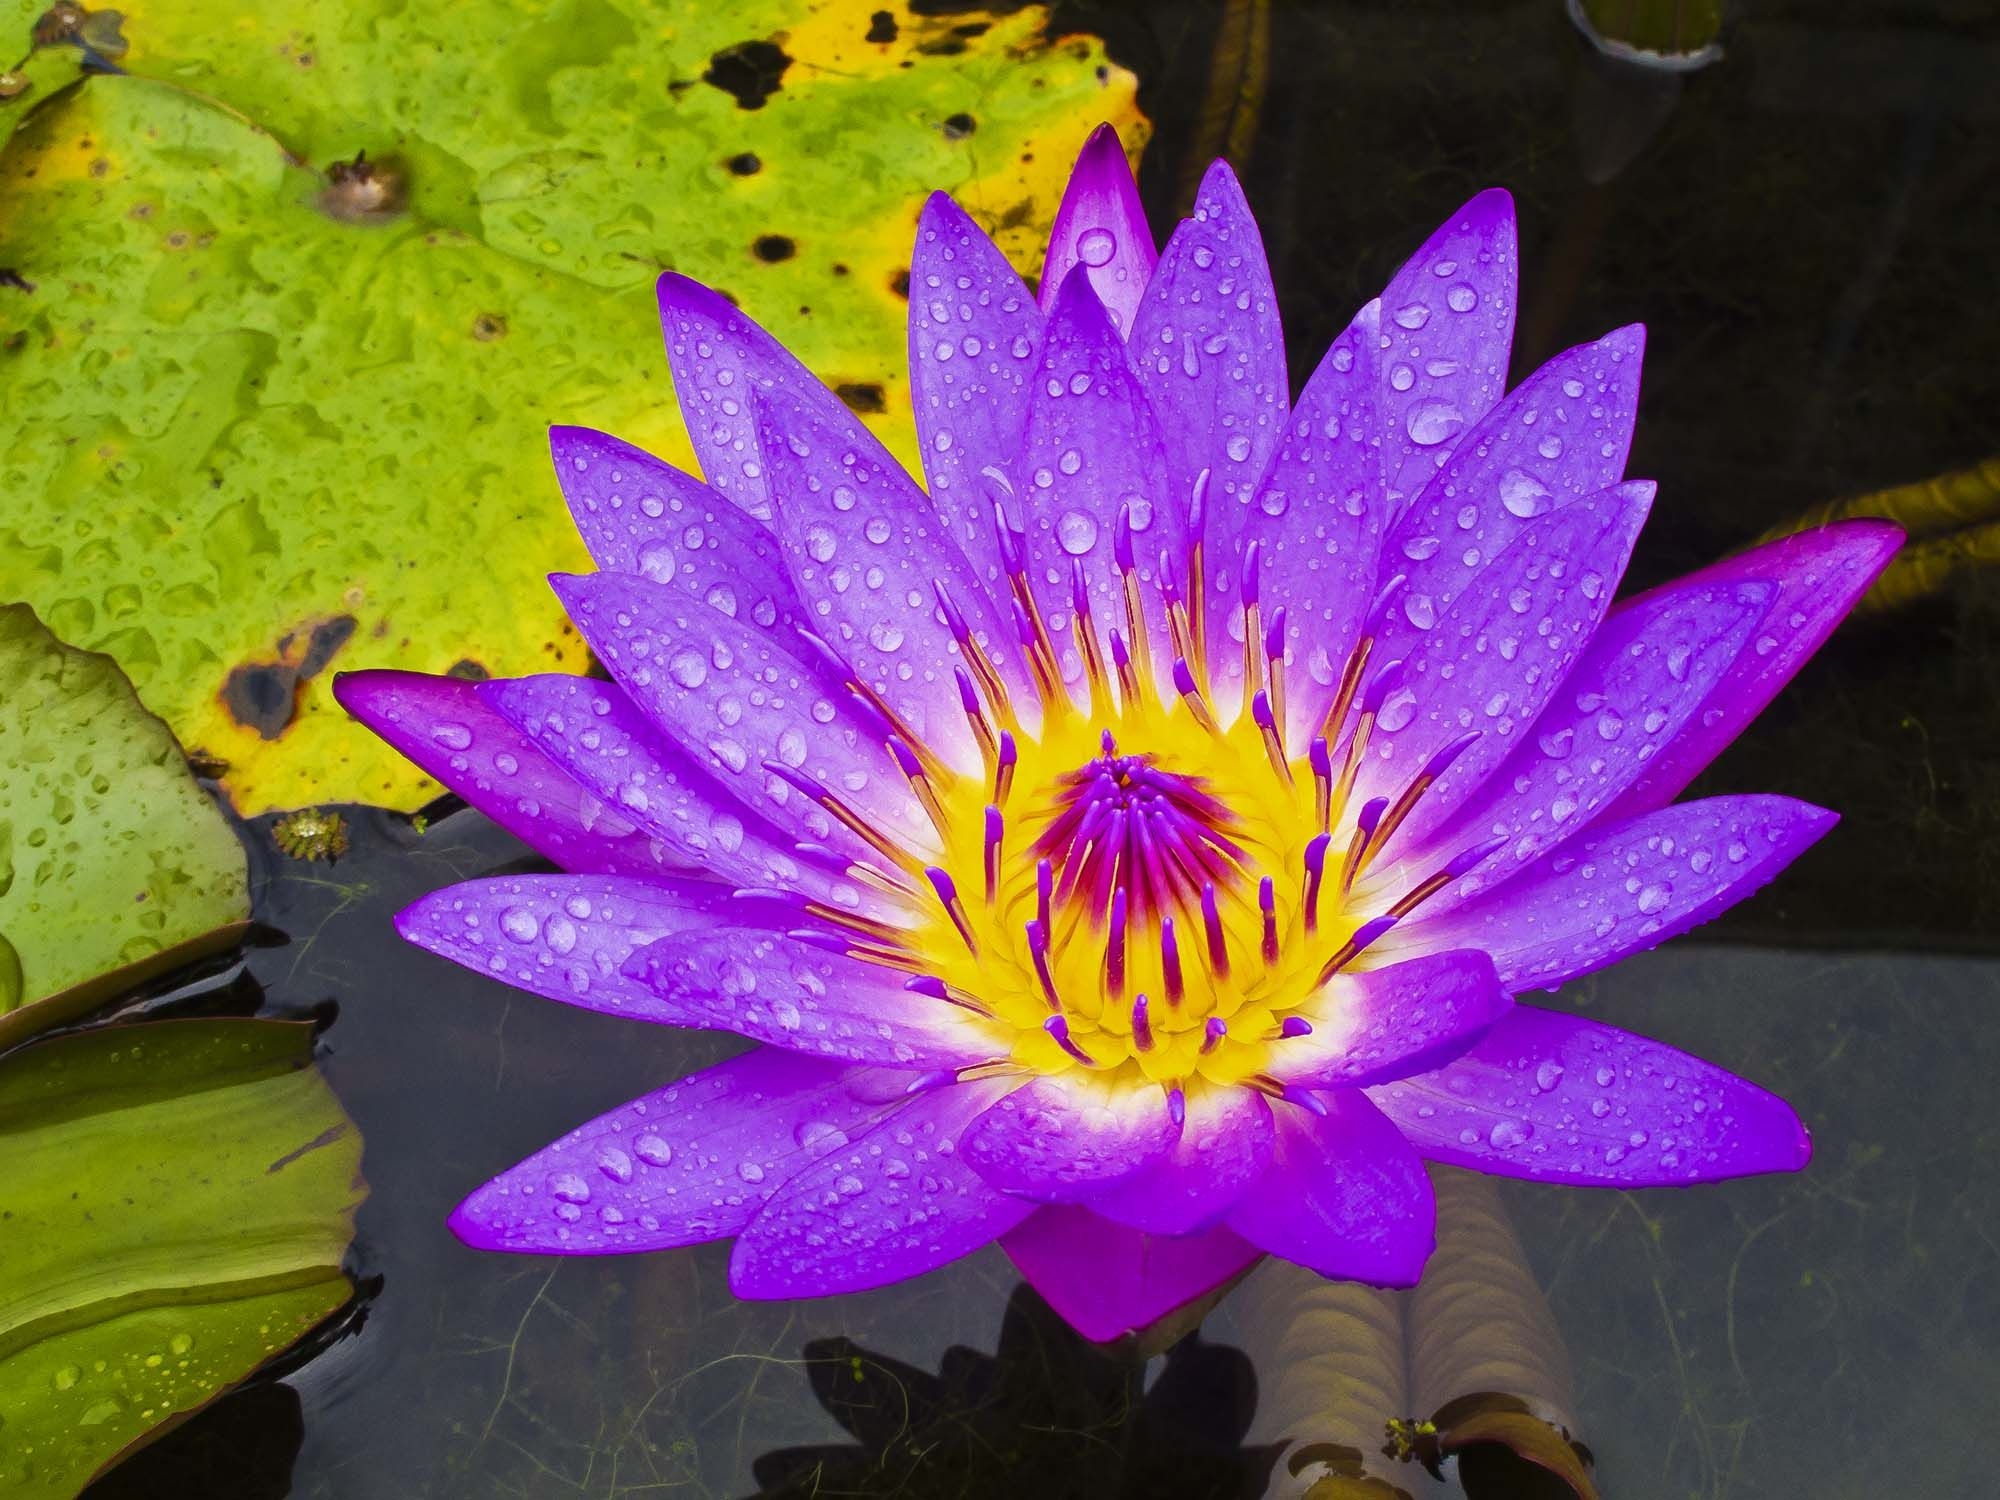 I Want A Water Lily Tattooed For Each Of My Girls Both July Babys With Images Birth Flower Tattoos Water Lily Tattoos Birth Flowers